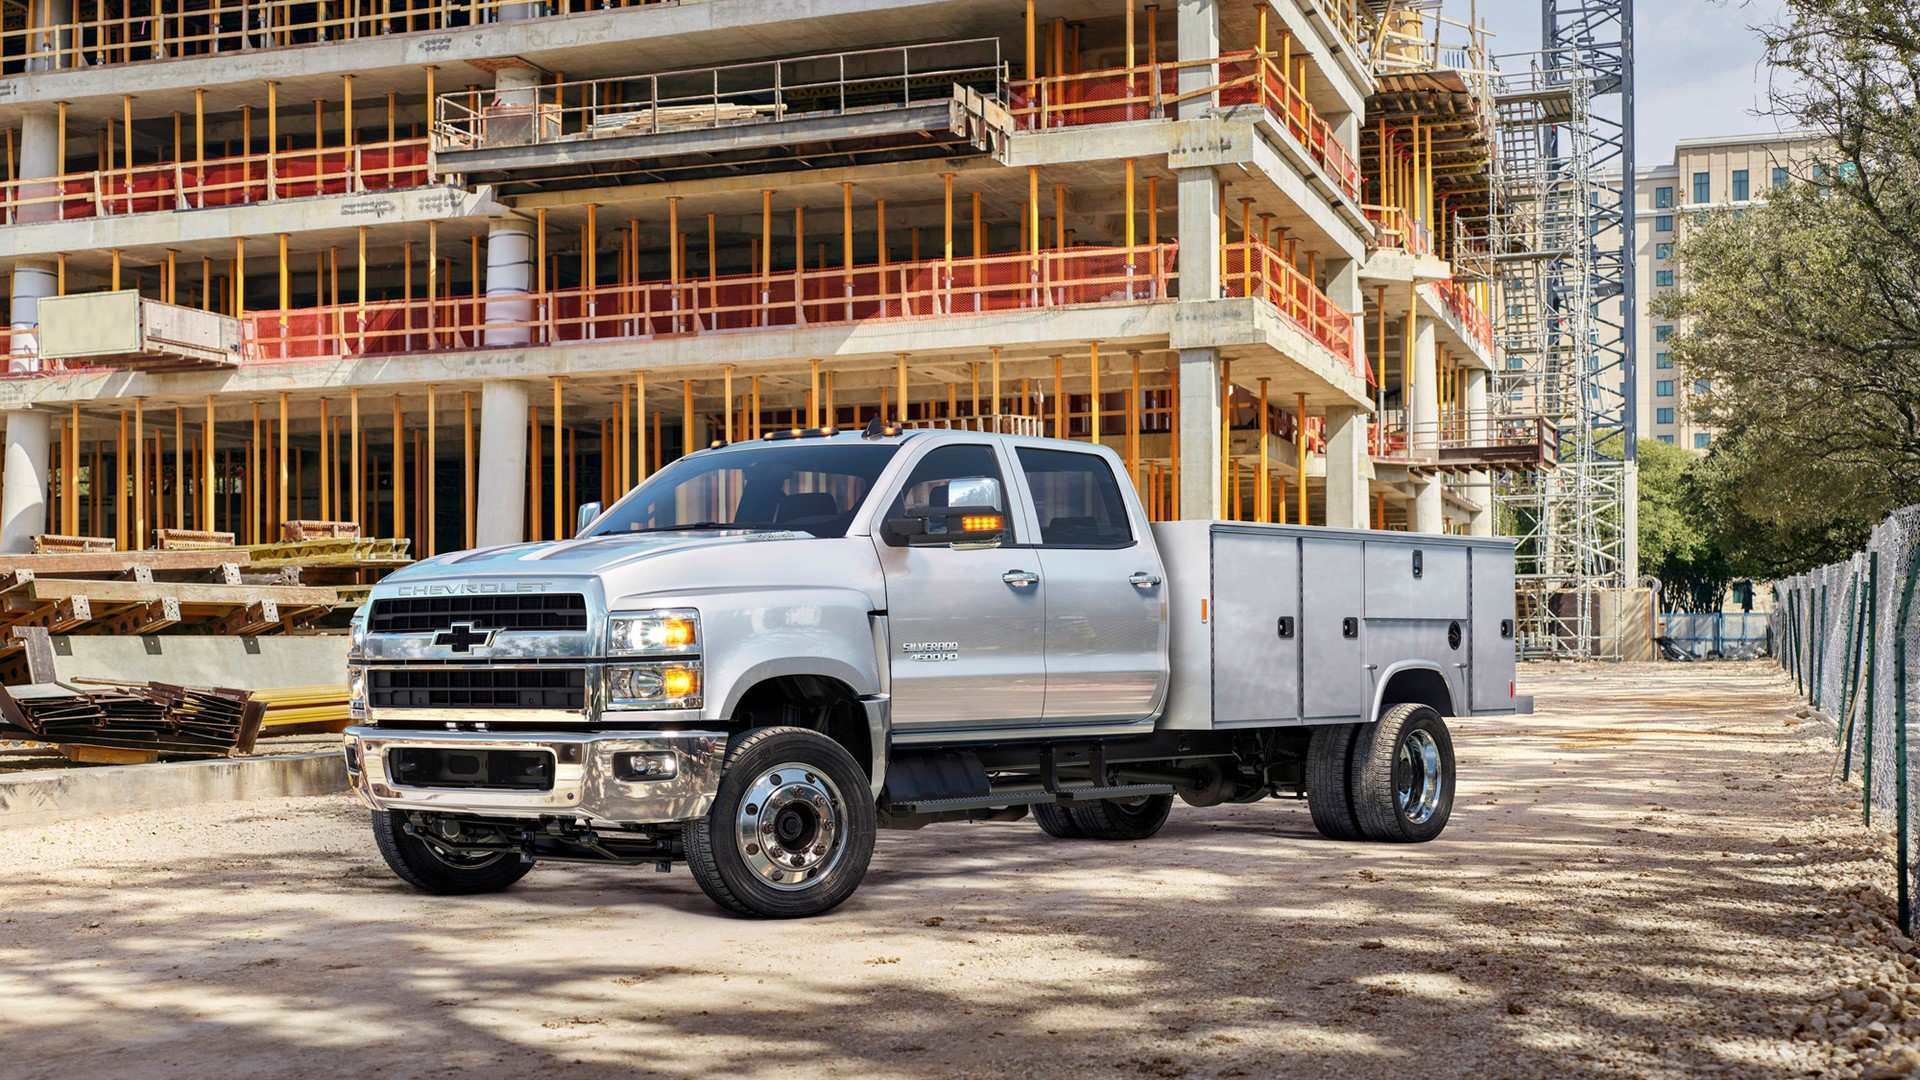 67 New New 2019 Chevrolet 4500 And 5500 Review And Specs First Drive by New 2019 Chevrolet 4500 And 5500 Review And Specs